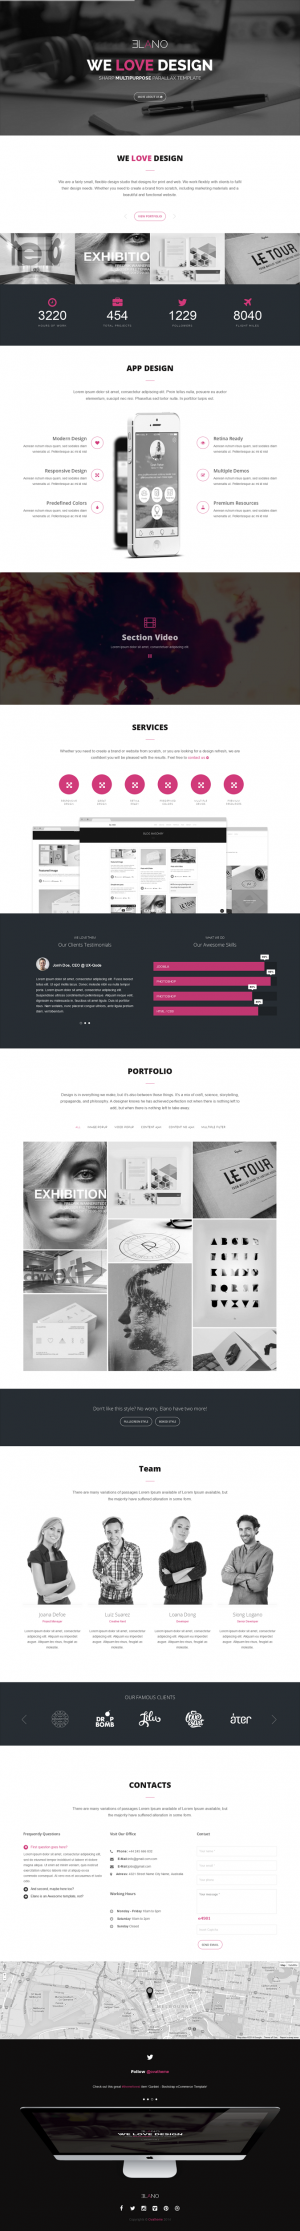 Elano is an new premium Multipurpose Joomla Template. This theme is One Page Parallax, HTML5, Co ...